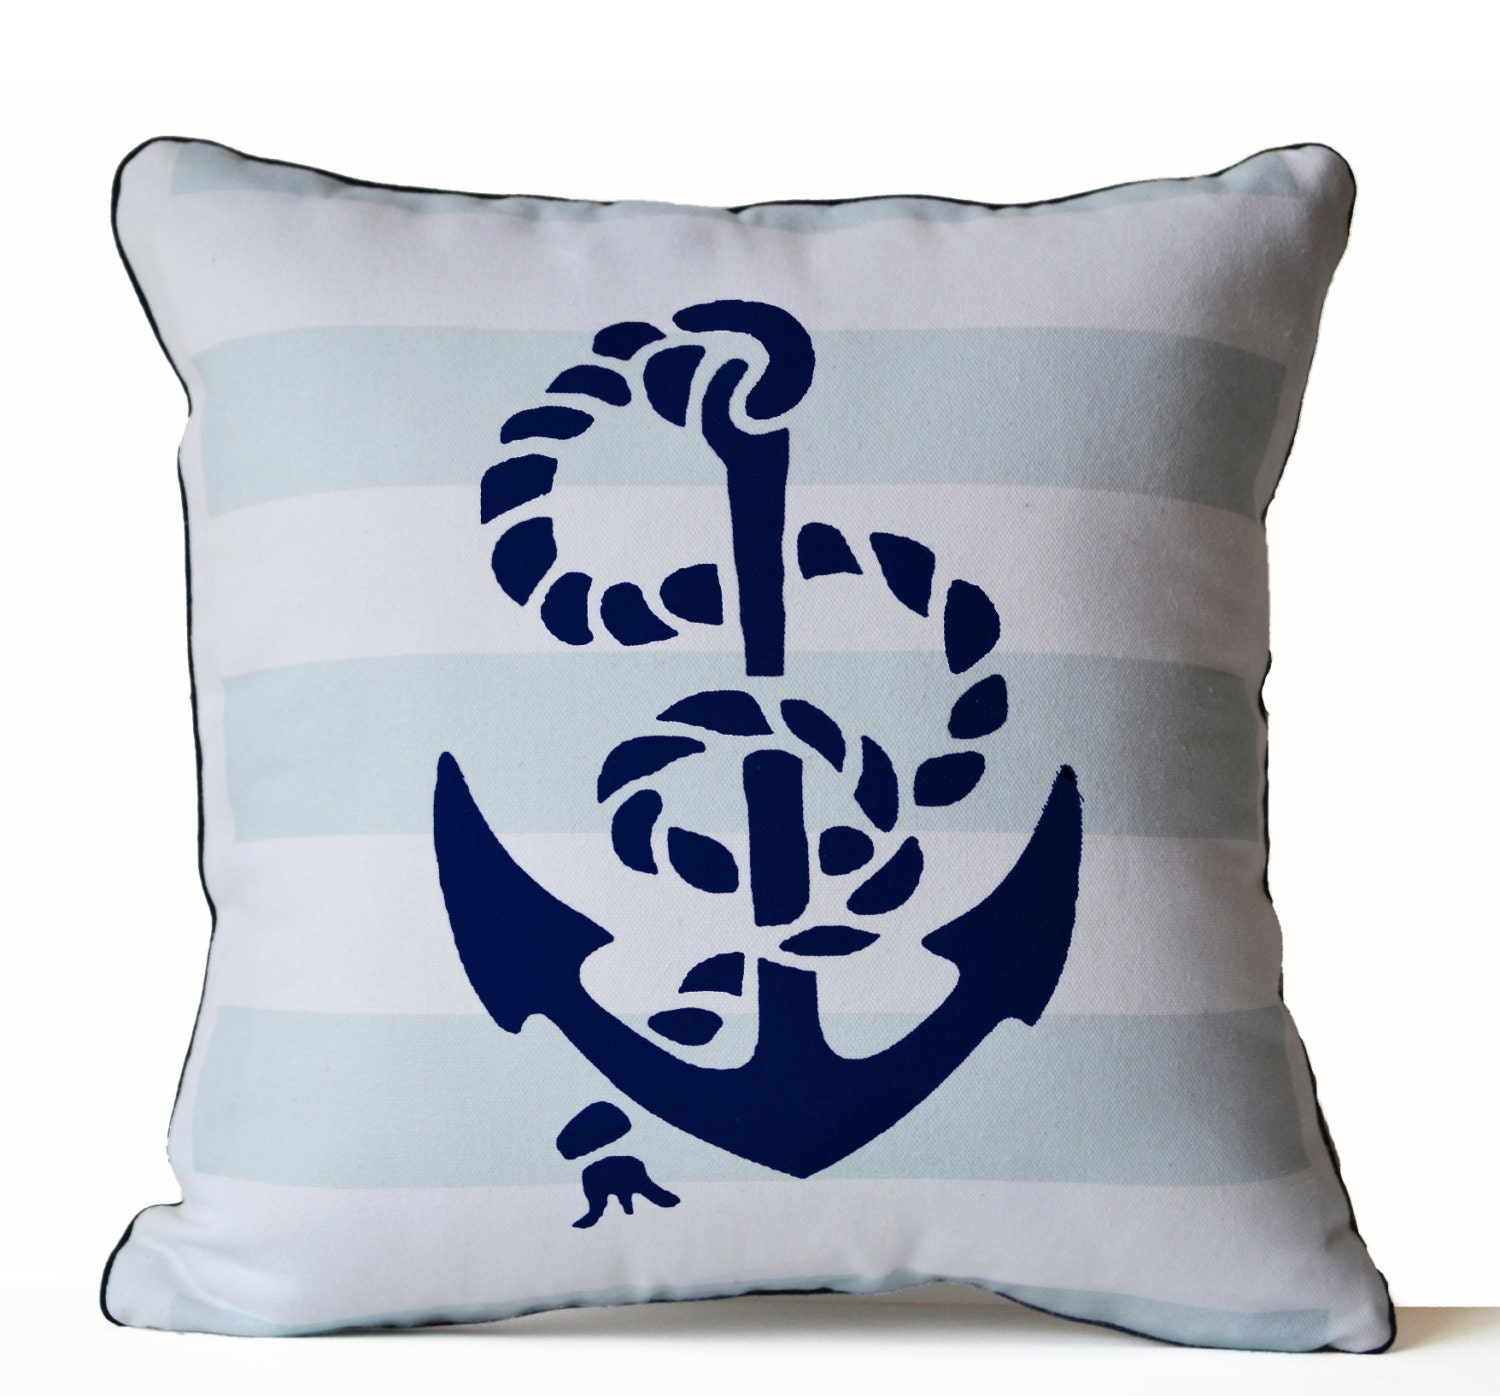 Throw Pillows Nordstrom : Throw Pillow Cover Anchor Pillow Nautical Oceanic Beach